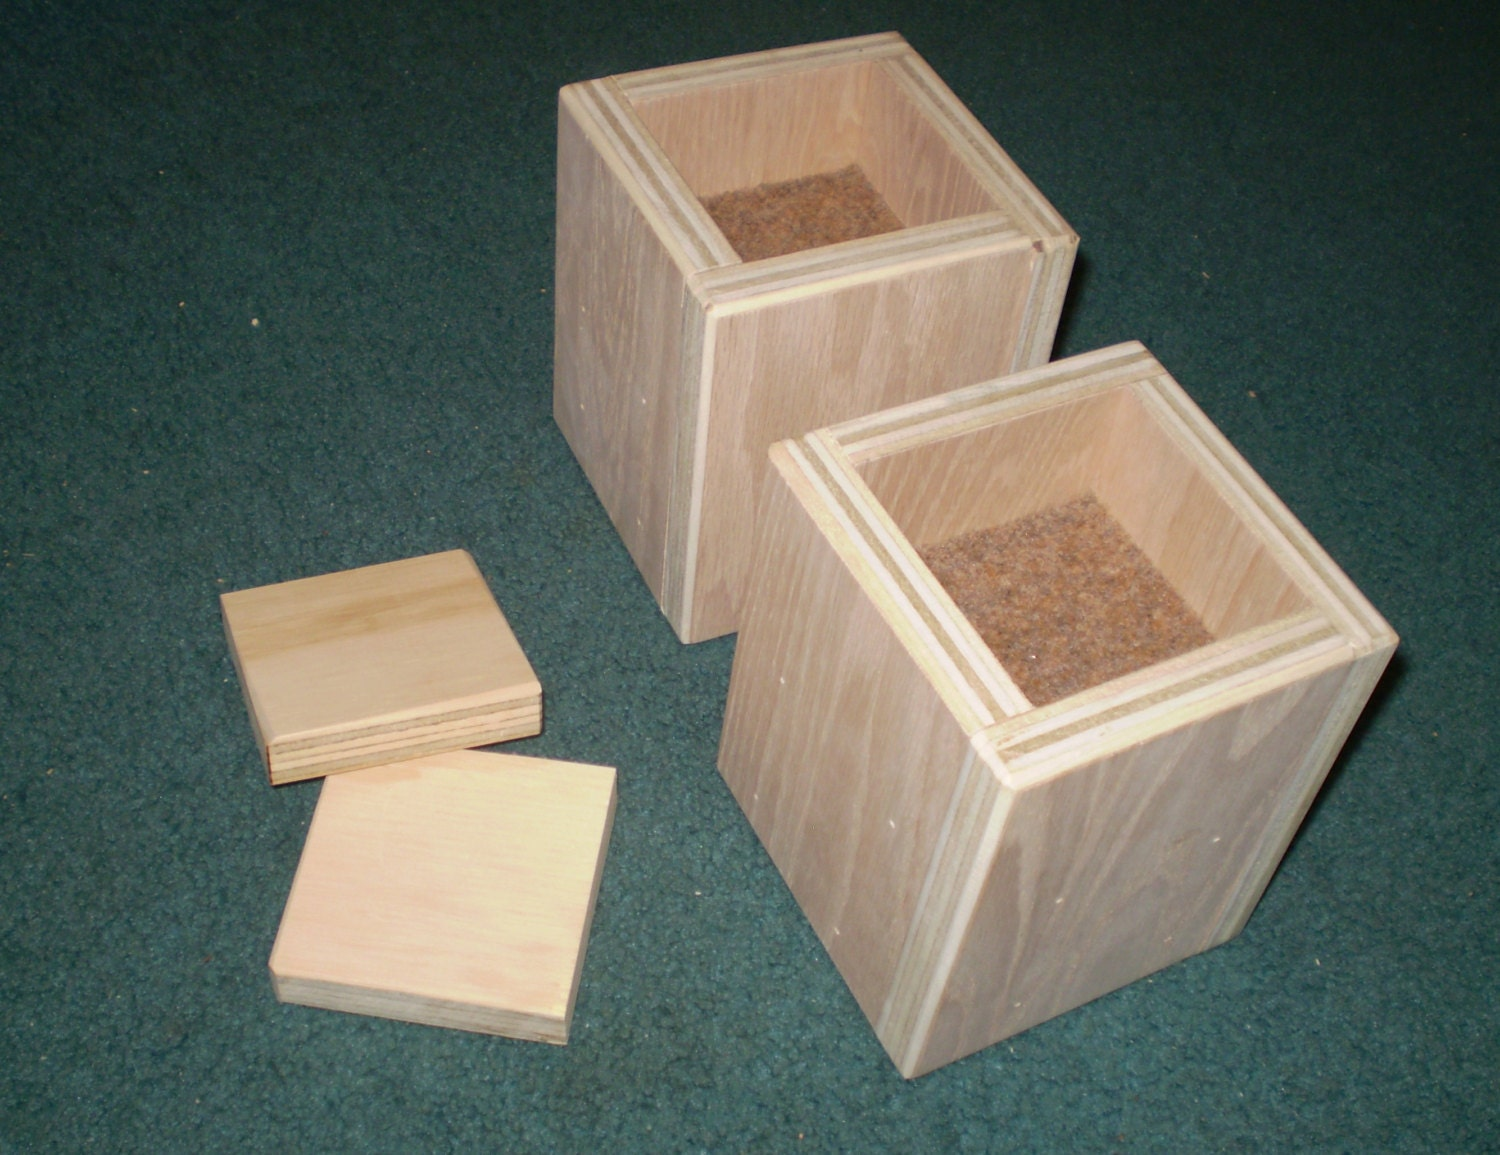 Furniture Risers, 4 Inch All Popular Items For Wood Construction On Etsy